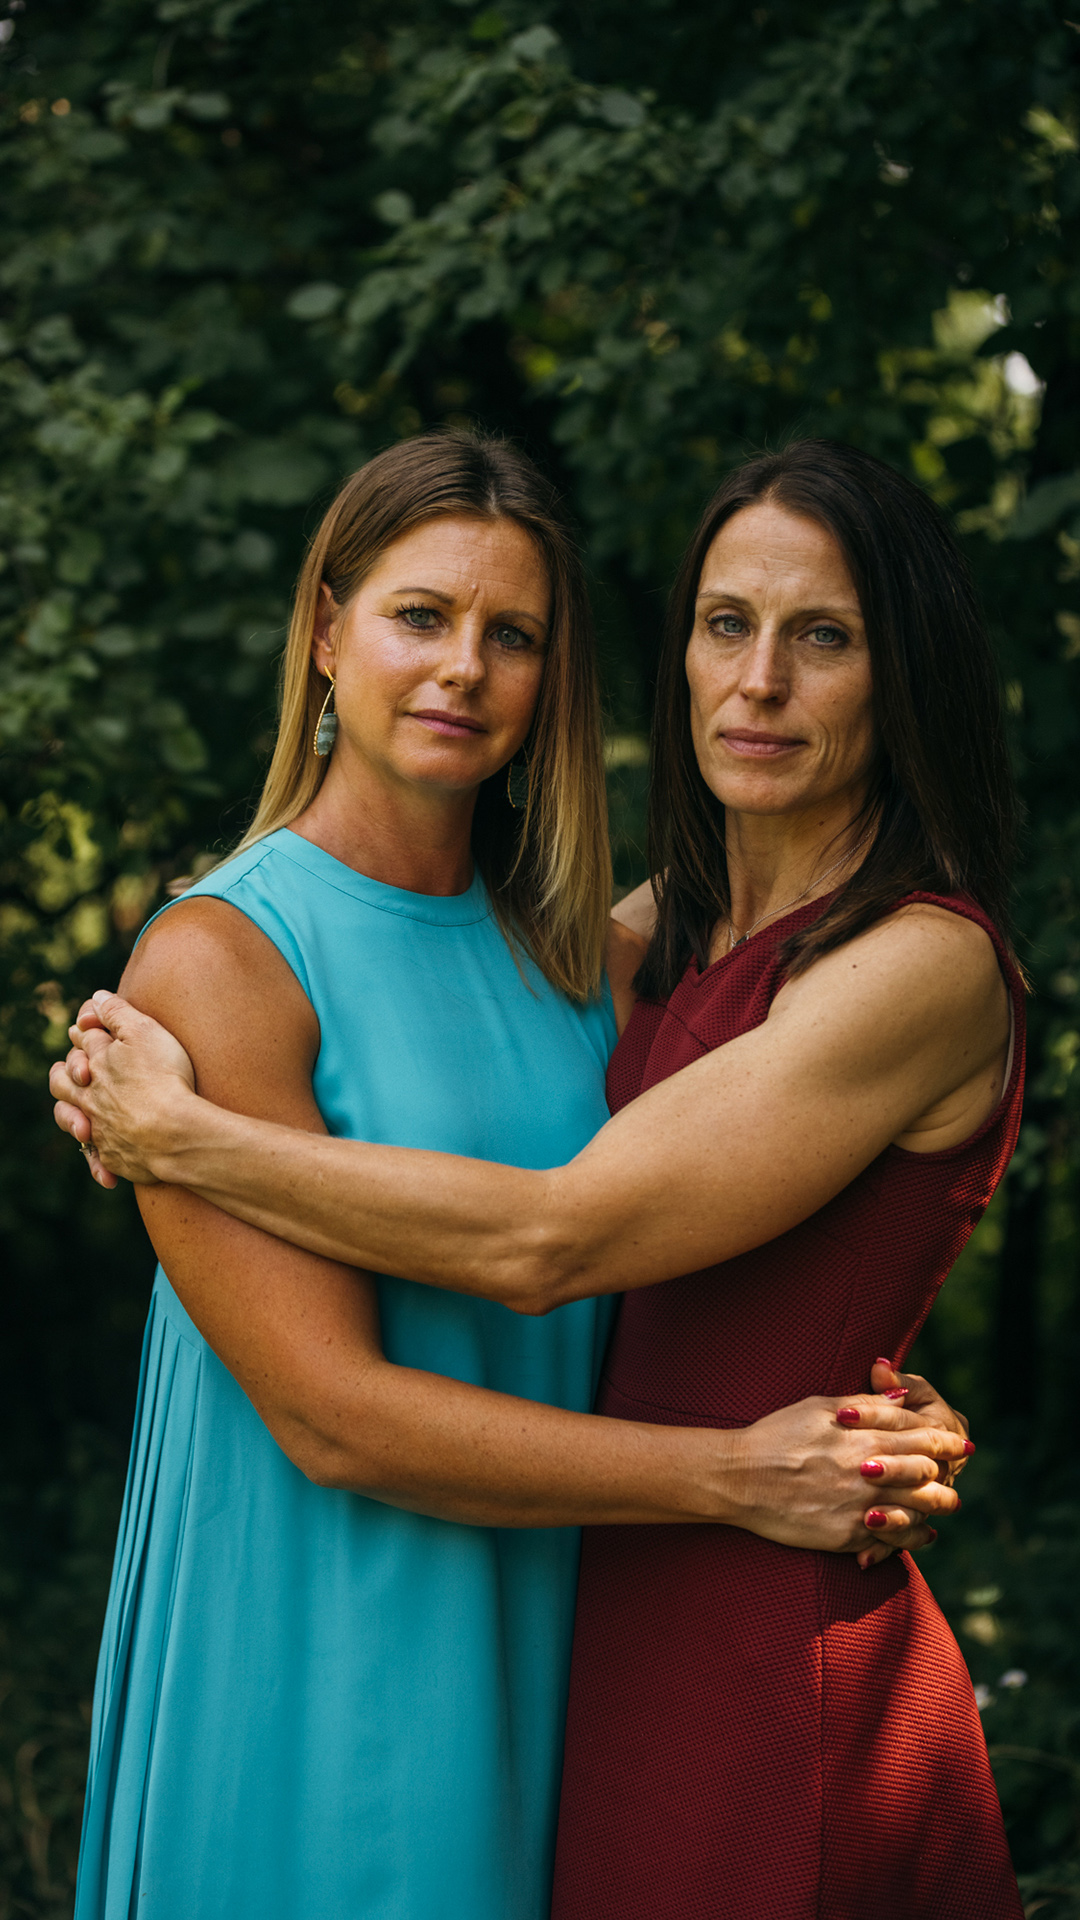 Jennifer Moston and Tracy hug while standing in front of foliage.